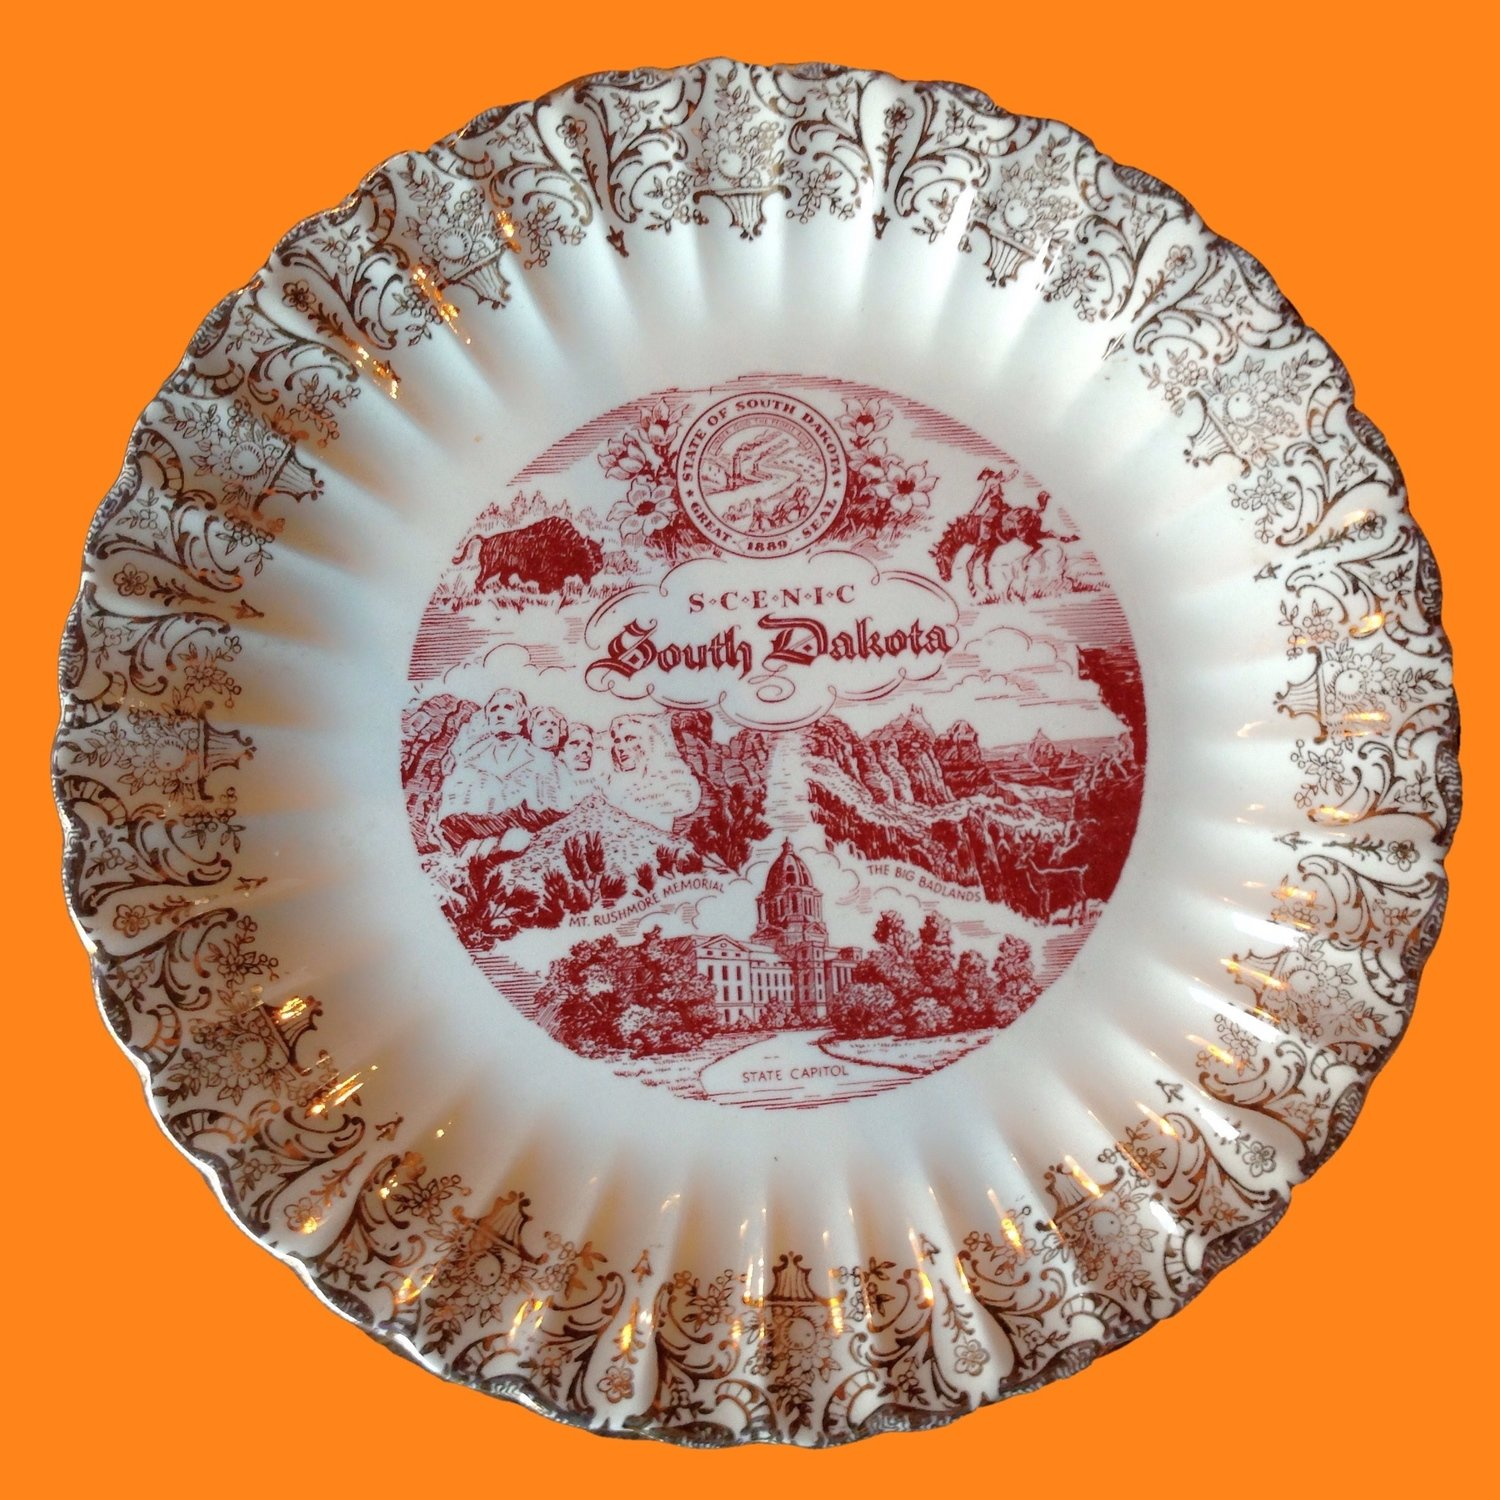 South Dakota Souvenir Place Plate State Plate Decor or Tableware